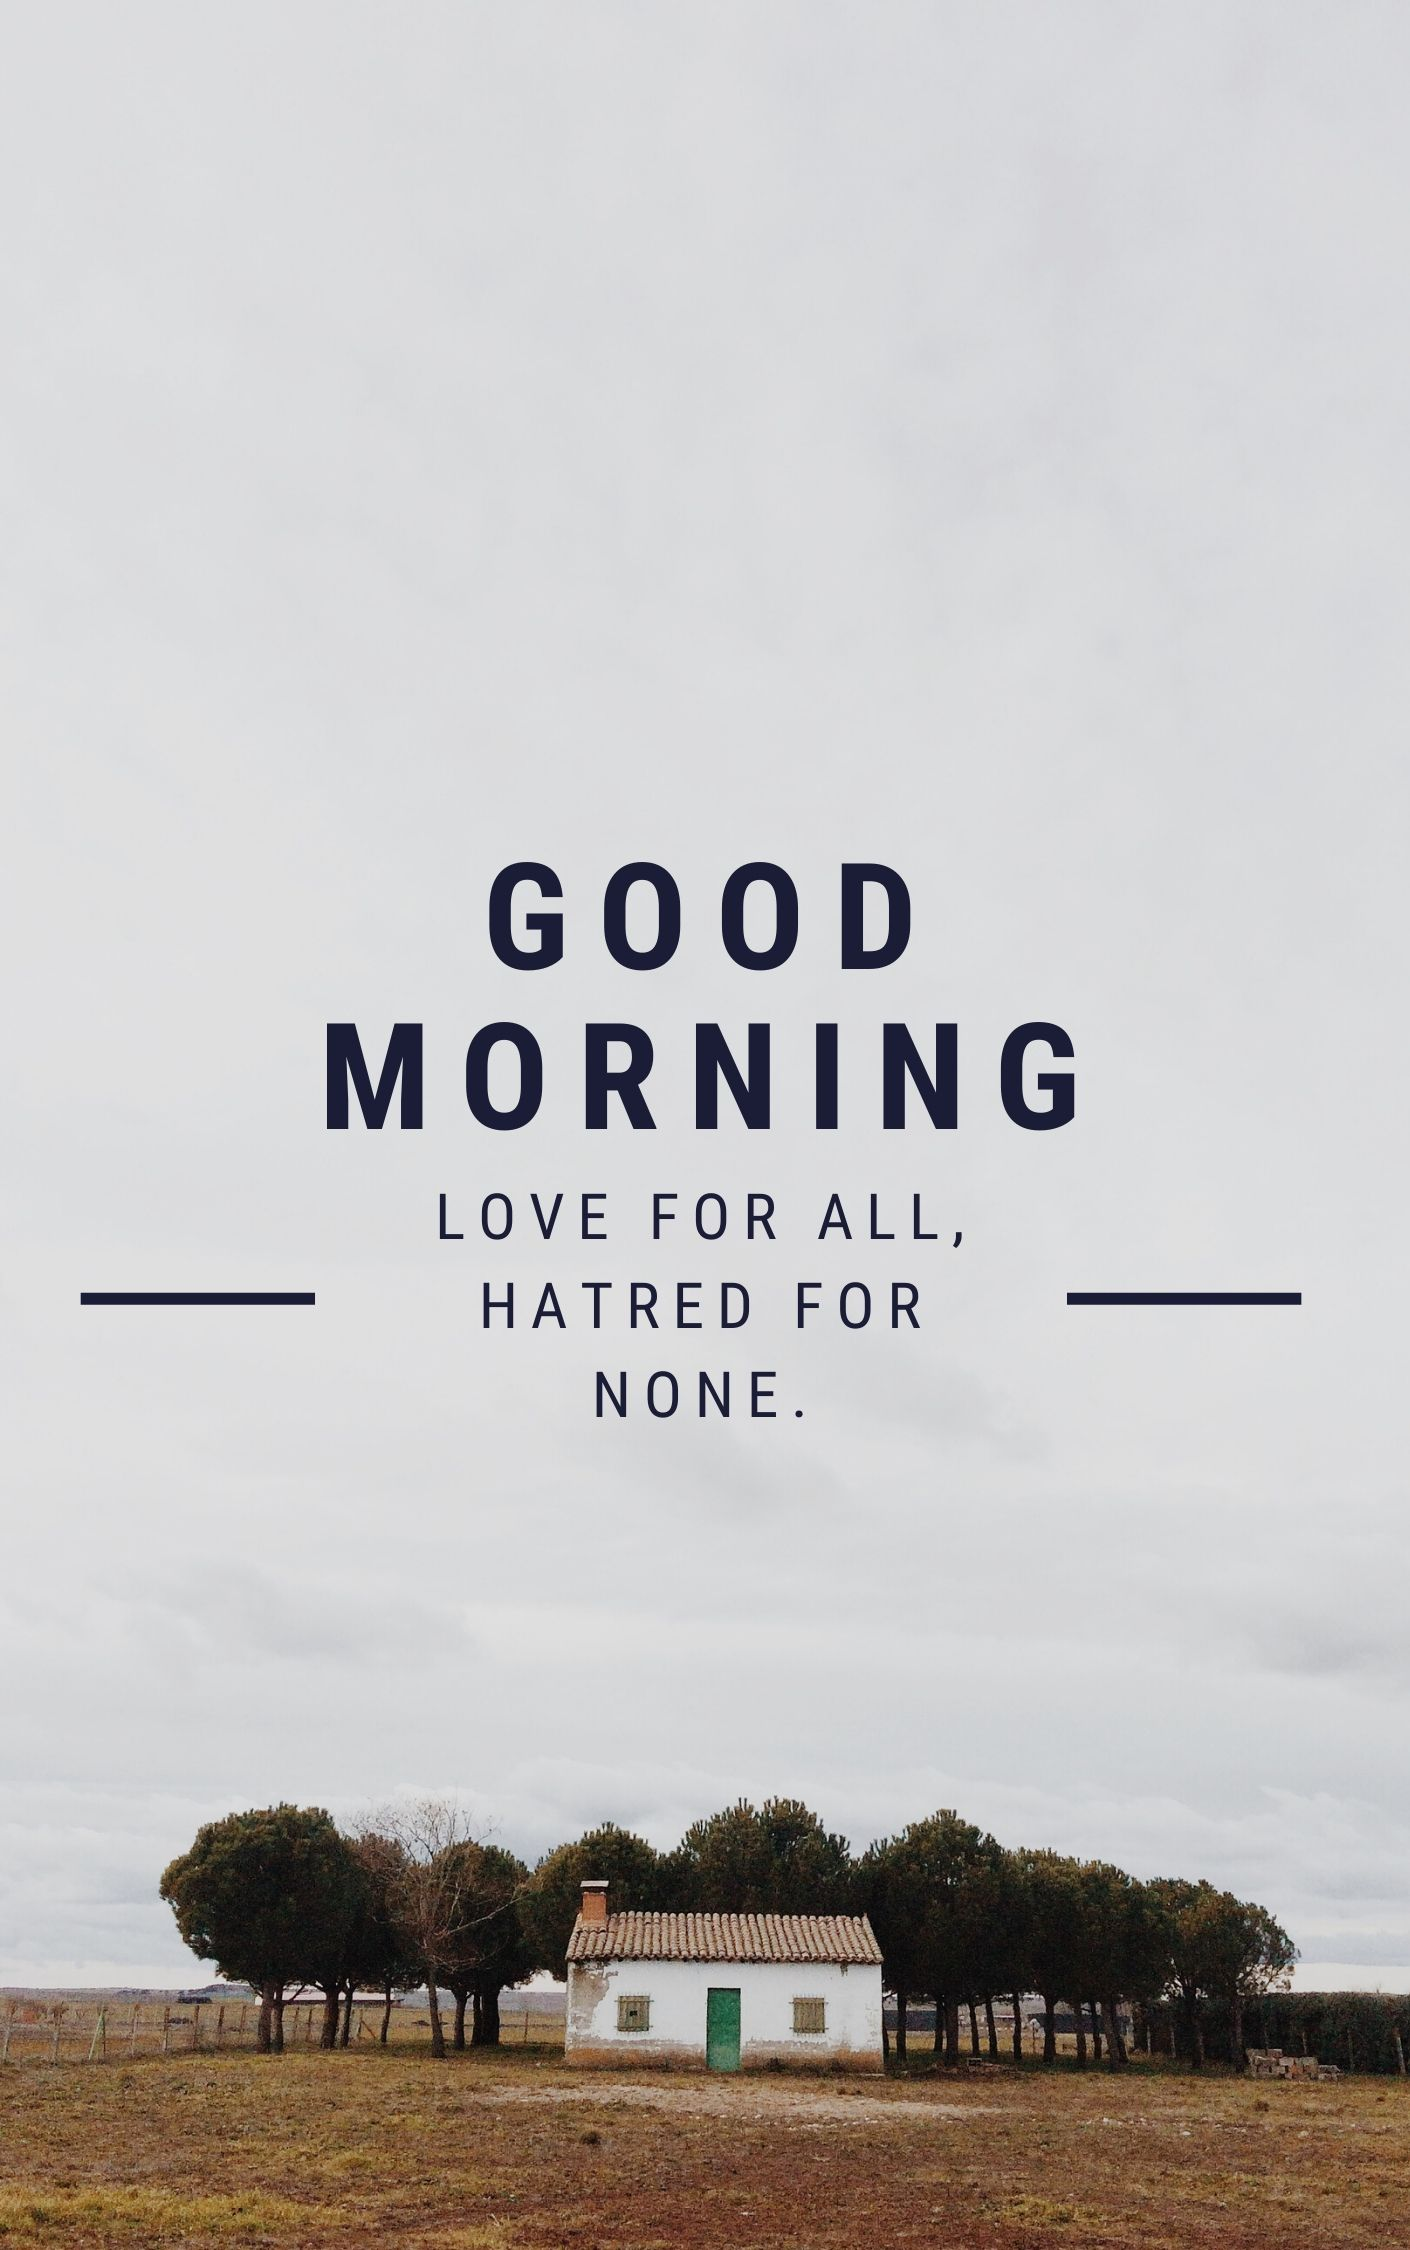 Love for All Hatred for none Good Morning Image full HD free download.